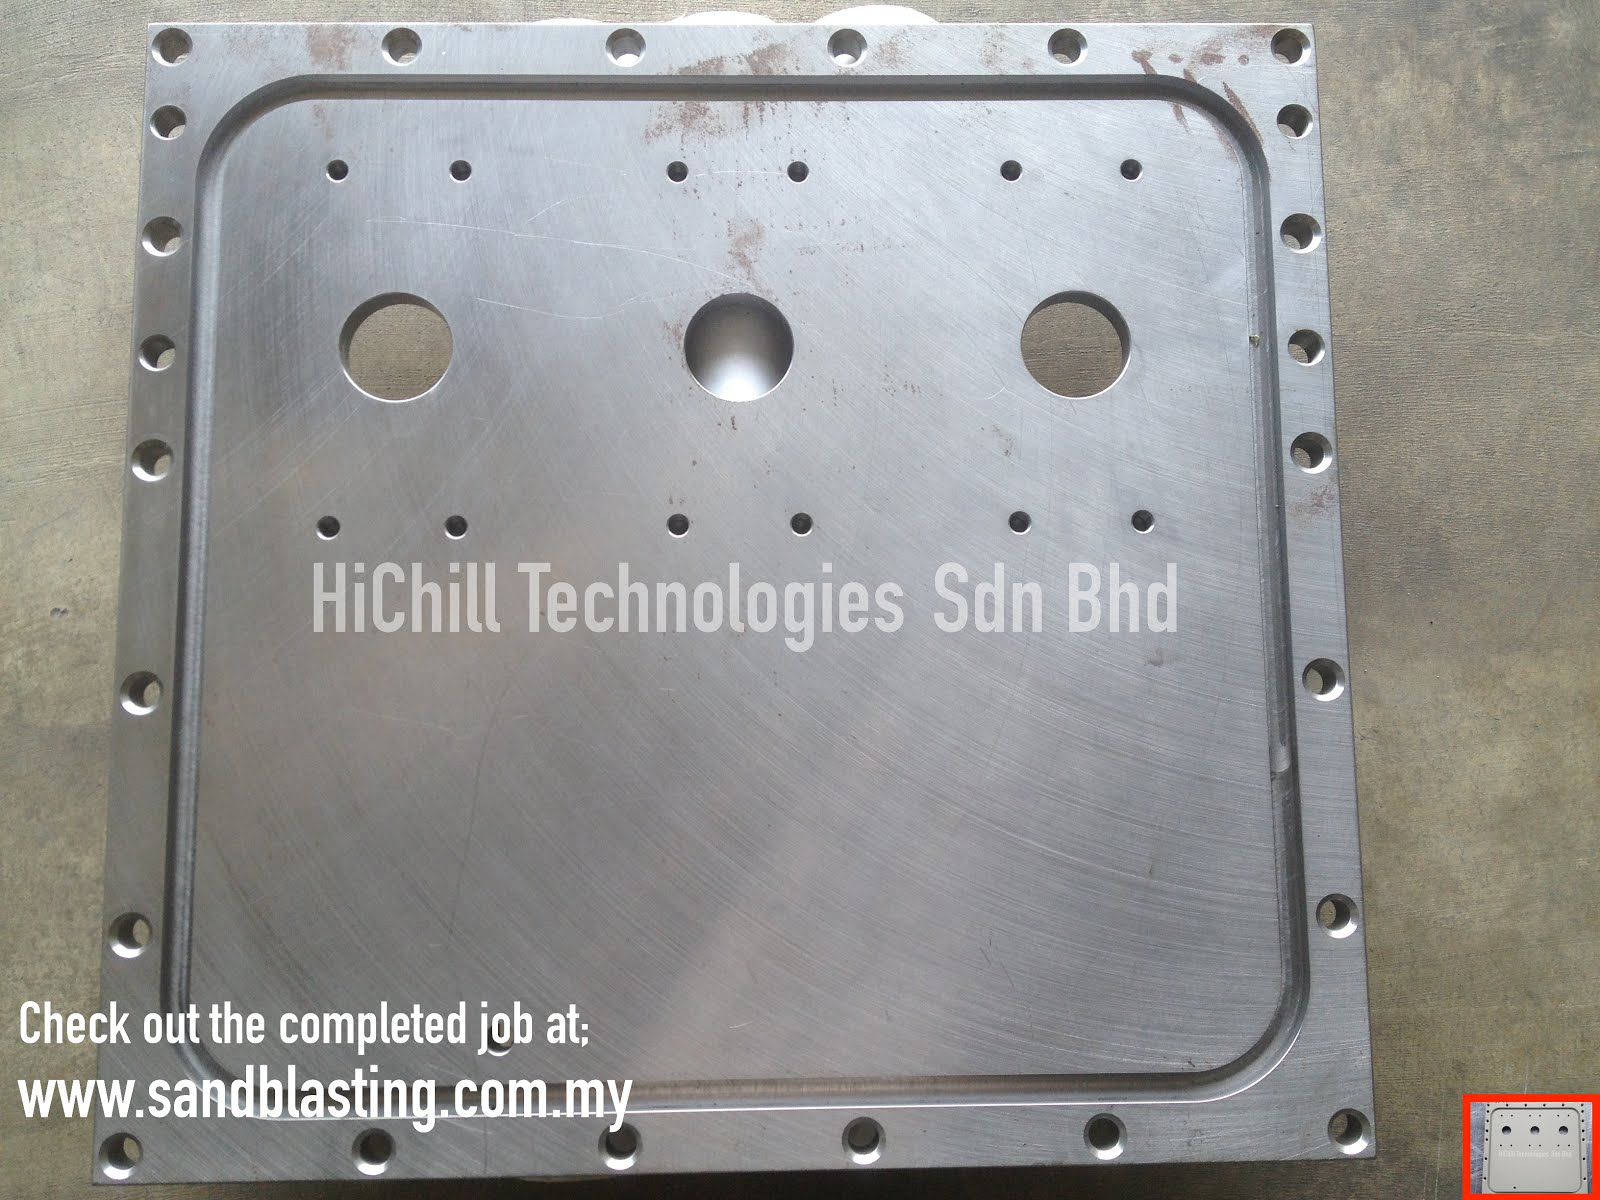 Sand blasting service in Malaysia: High Voltage Electric Panel ...